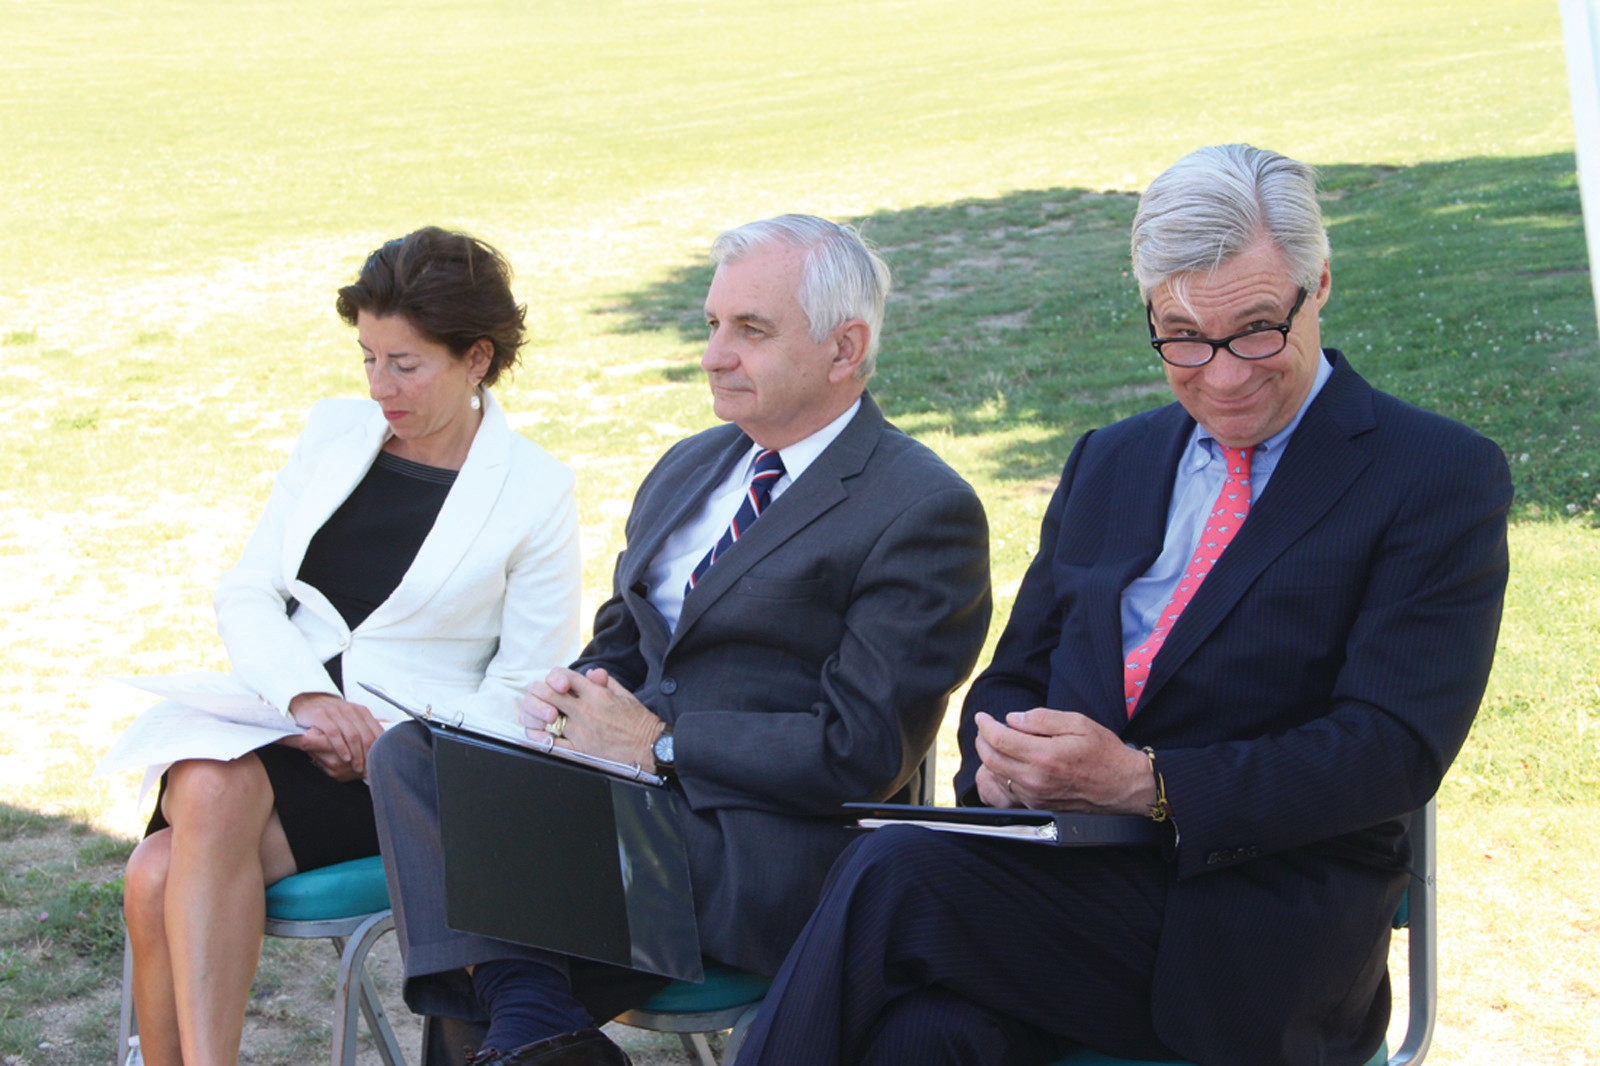 PARK LINEUP: Gov. Gina Raimondo and Senators Jack Reed and Sheldon Whitehouse all shared memories as officials gathered Friday to celebrate 10 pathway signs created for the park by Leadership Rhode Island.